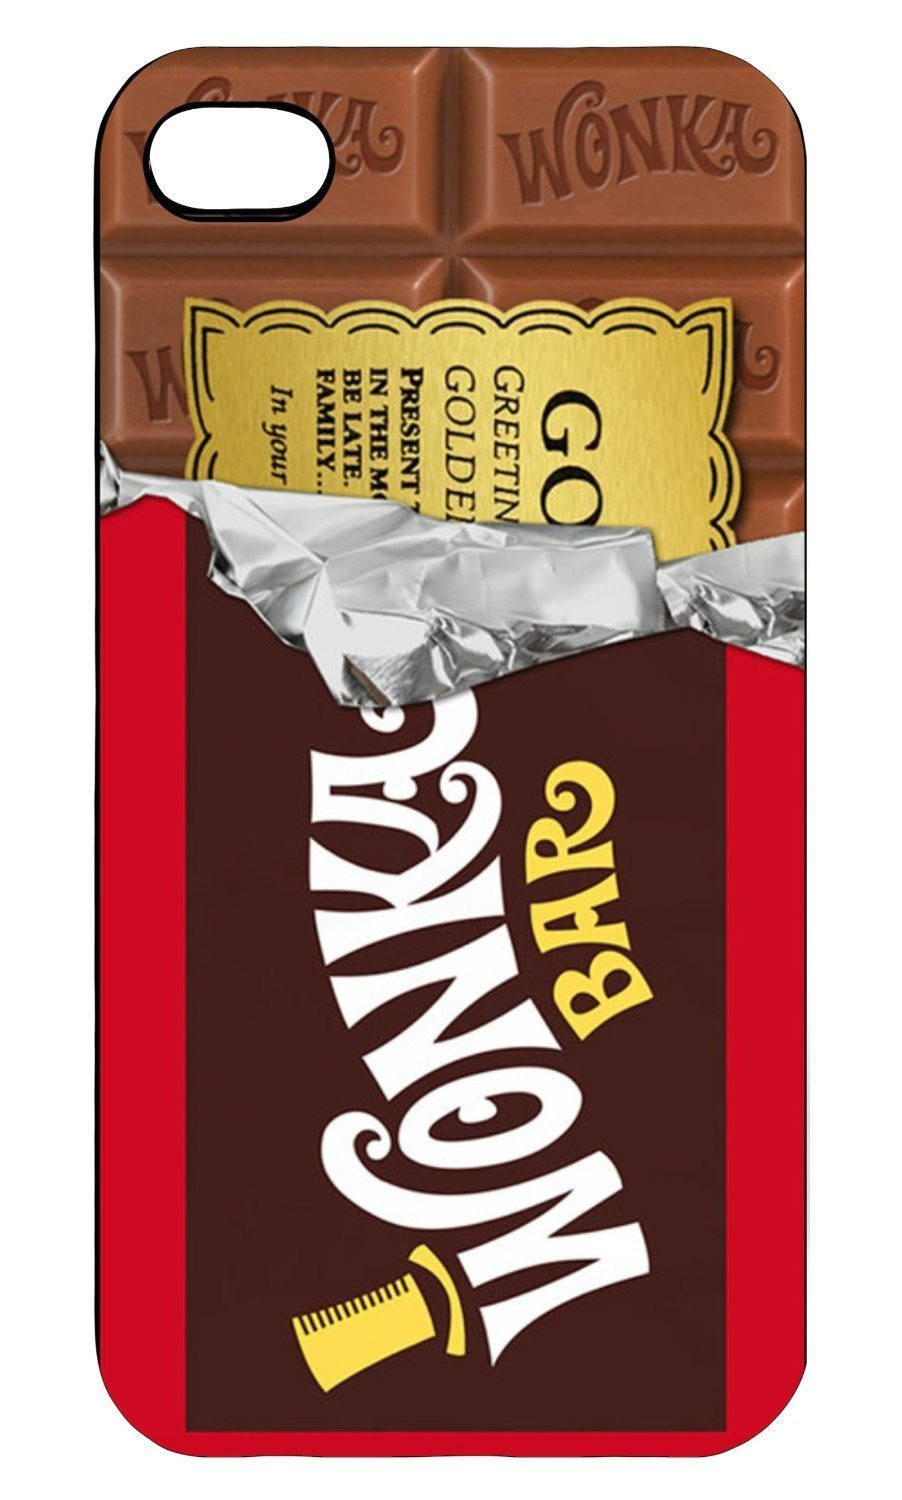 Golden Bar Willy Wonka Chocolate i013 IPHONE 4/4S: Amazon.co.uk ...